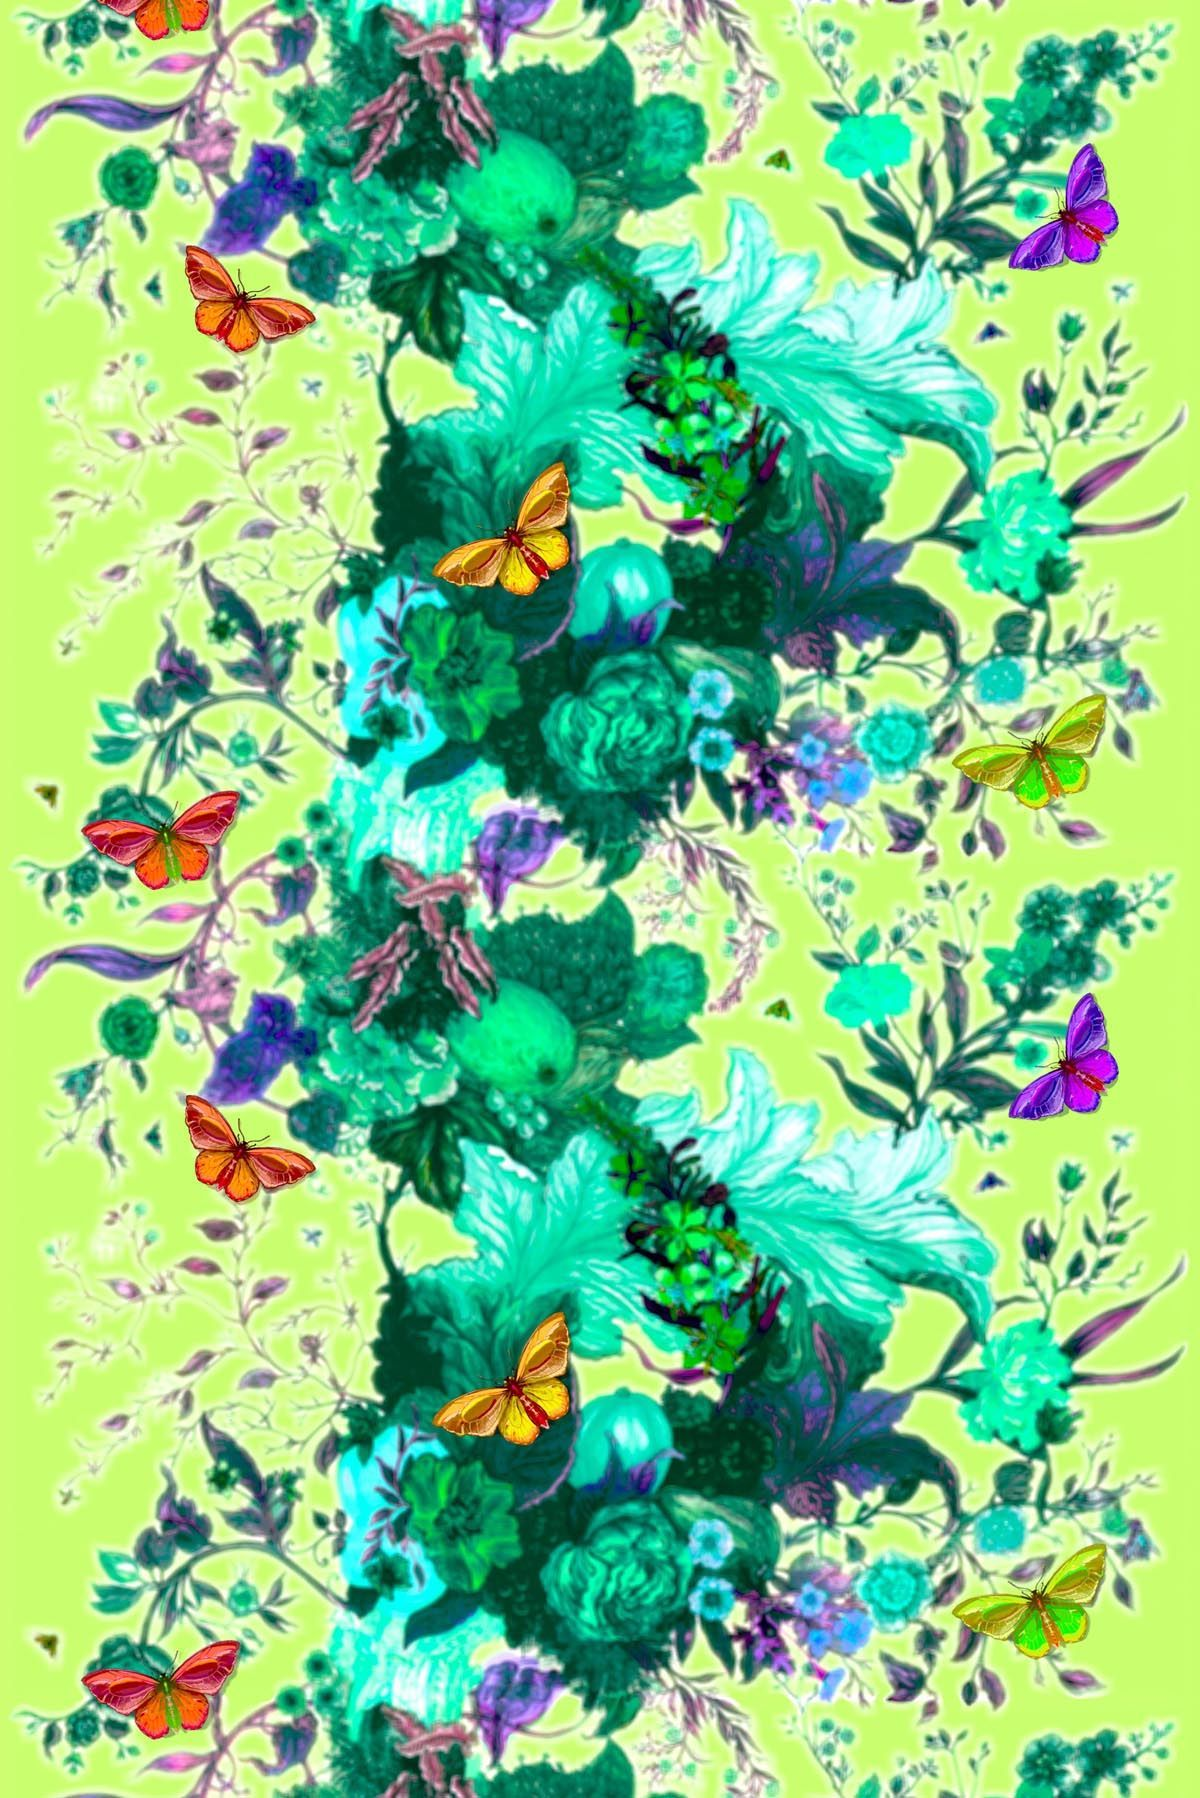 Timorous Beasties Fabric Butterfly Blurr...I adore